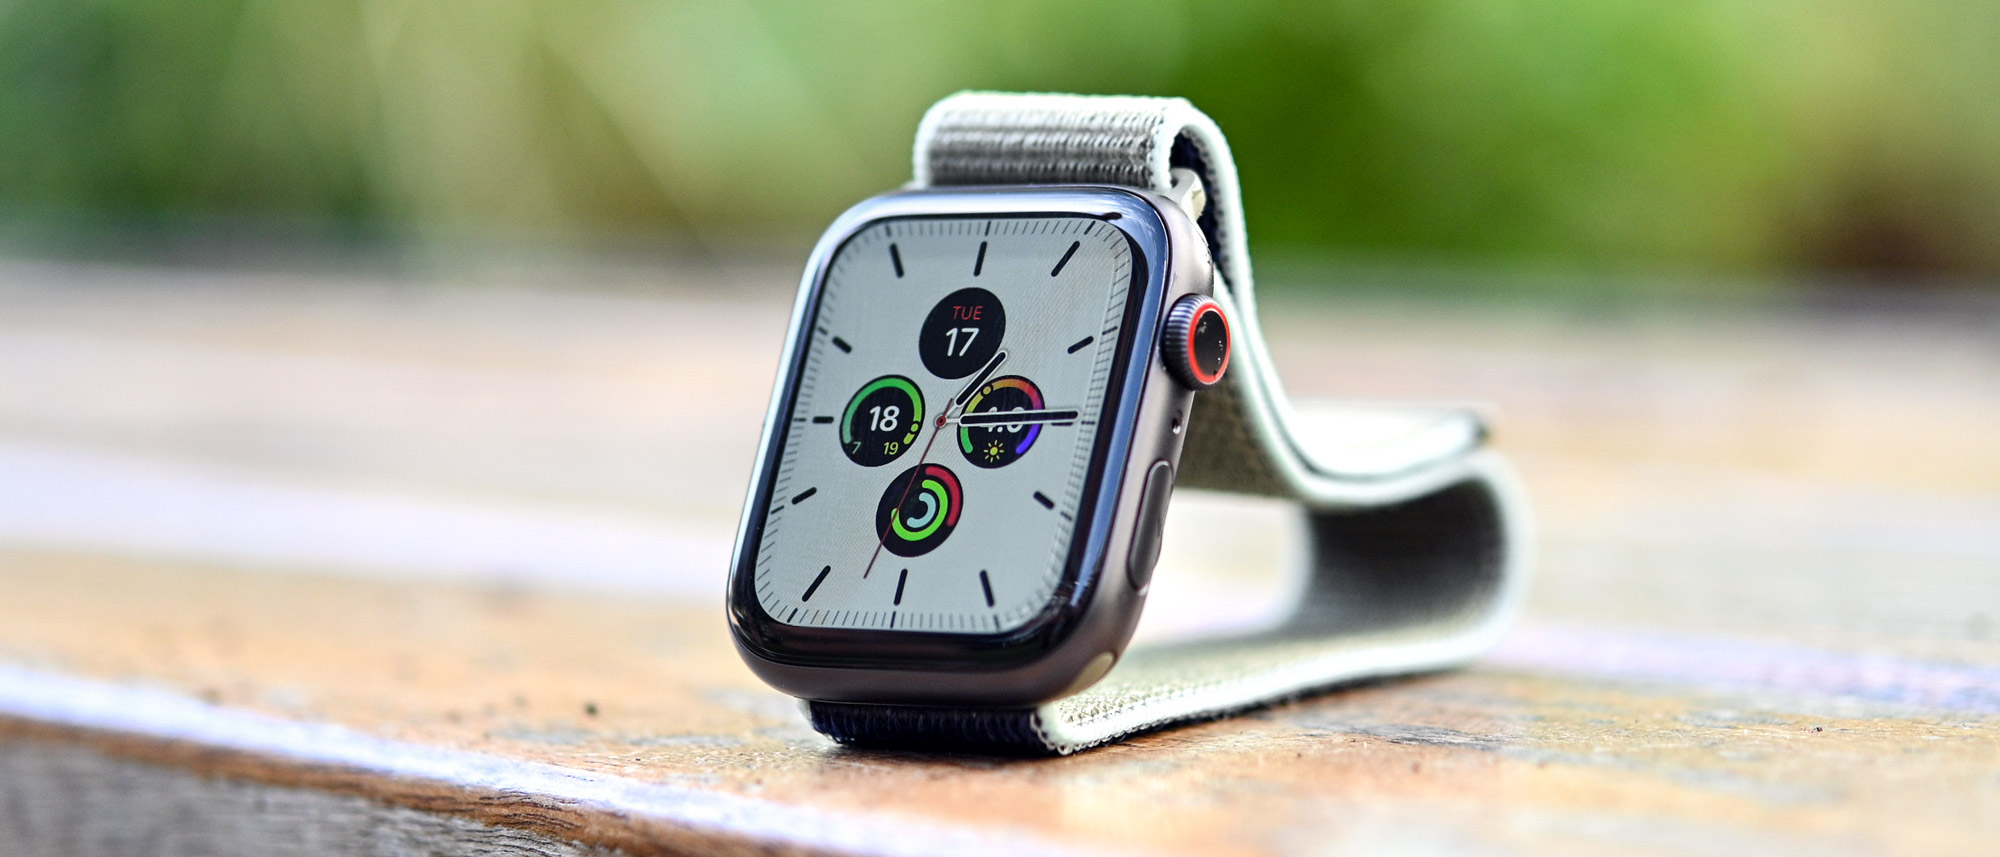 Apple Watch Series 5: 2019 release date